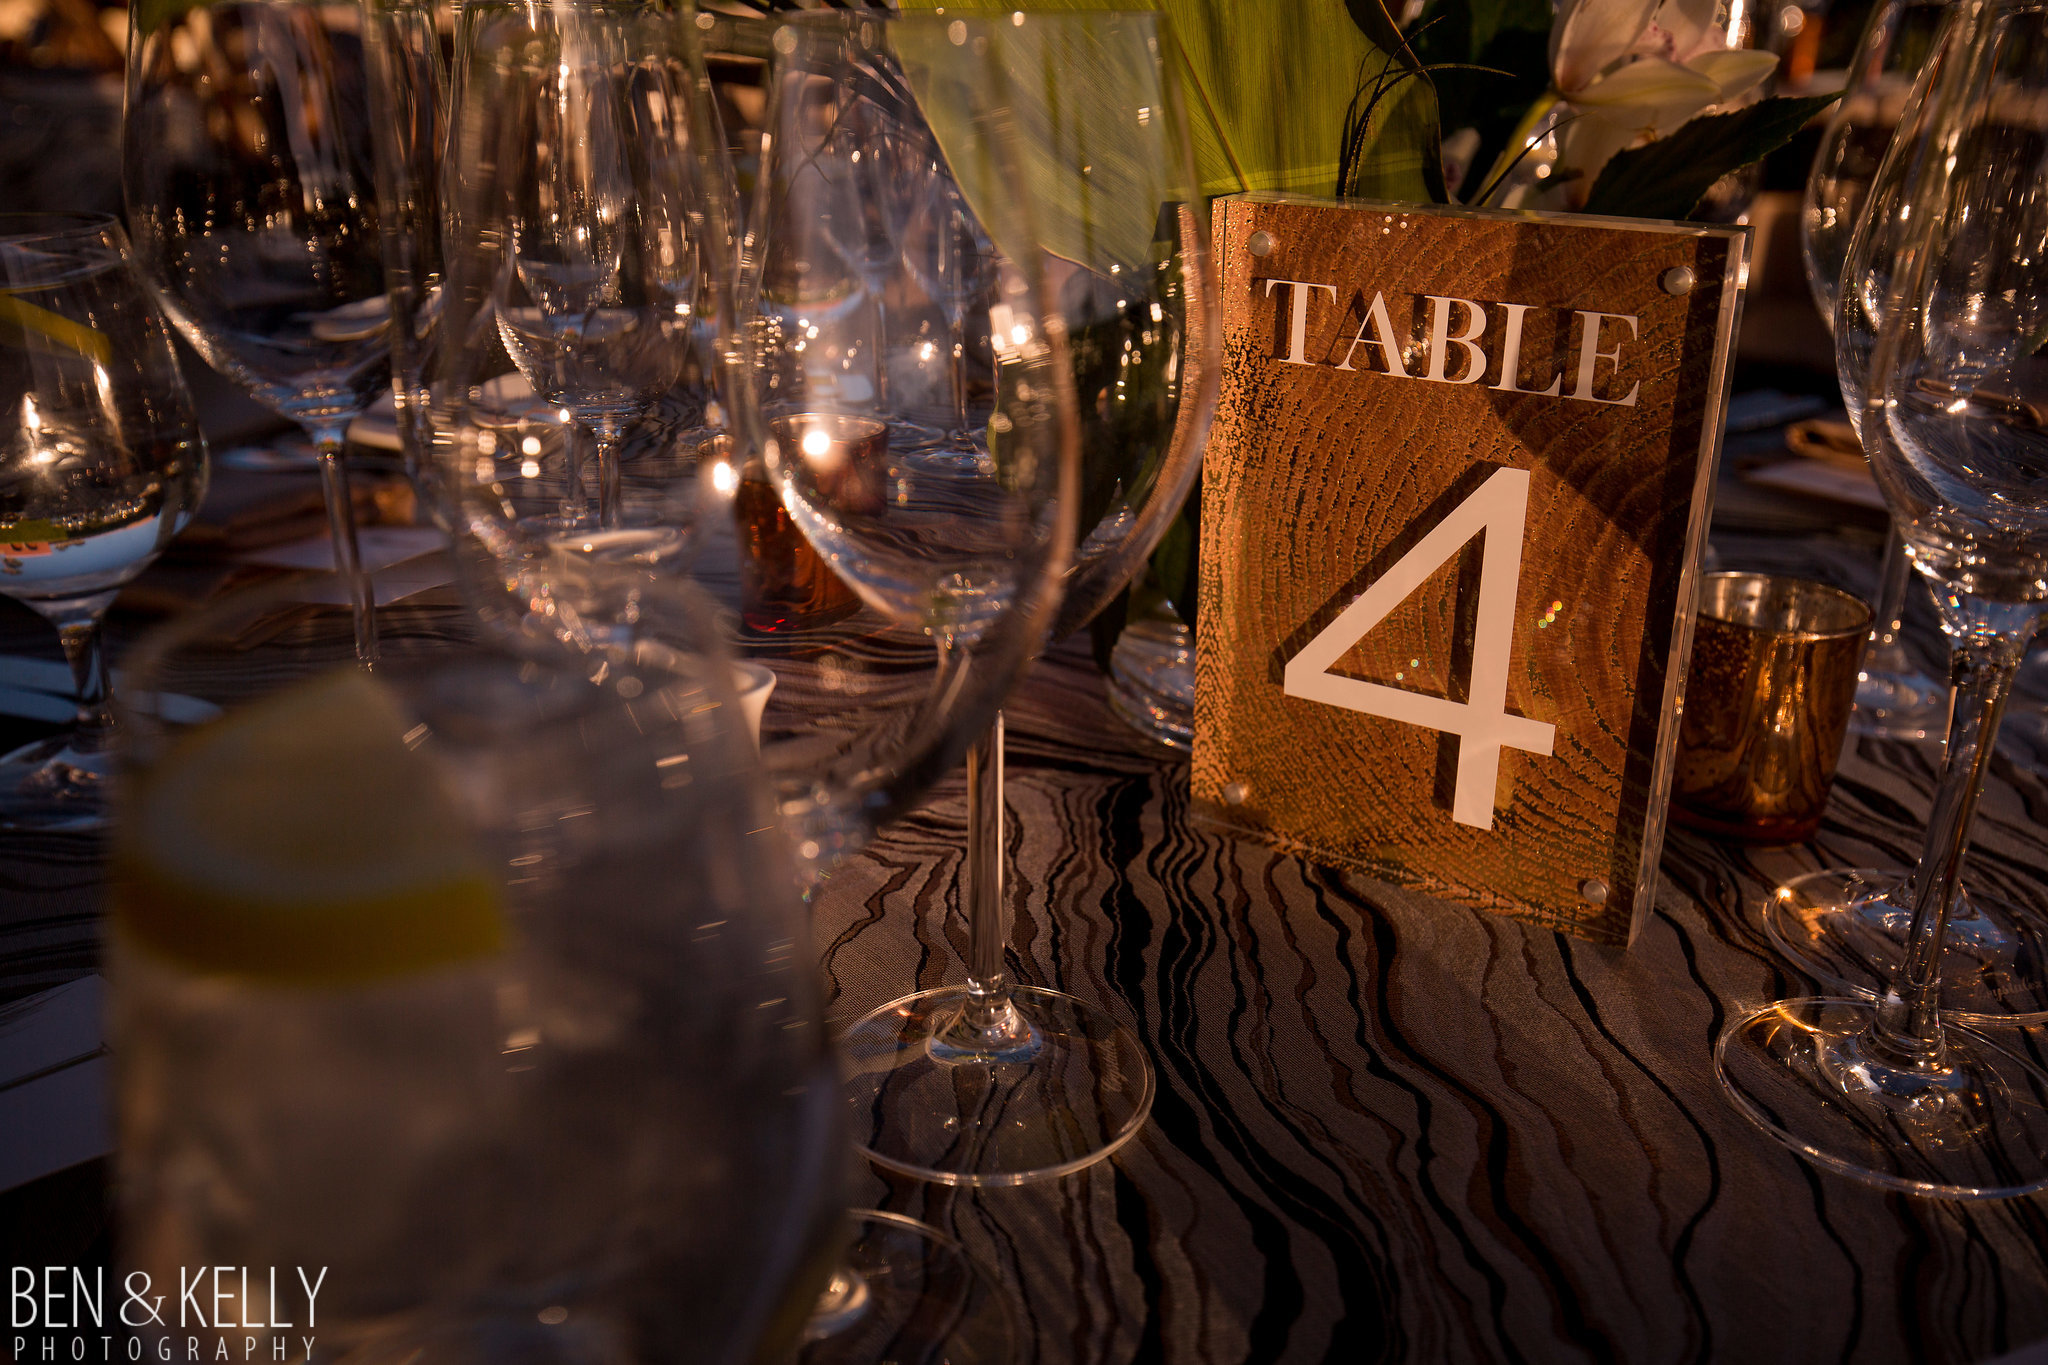 31 table number wedding reception table wood grain table number acrylic frame table number neutral wedding colors Life Design Events photo by Ben and Kelly Photography.jpg